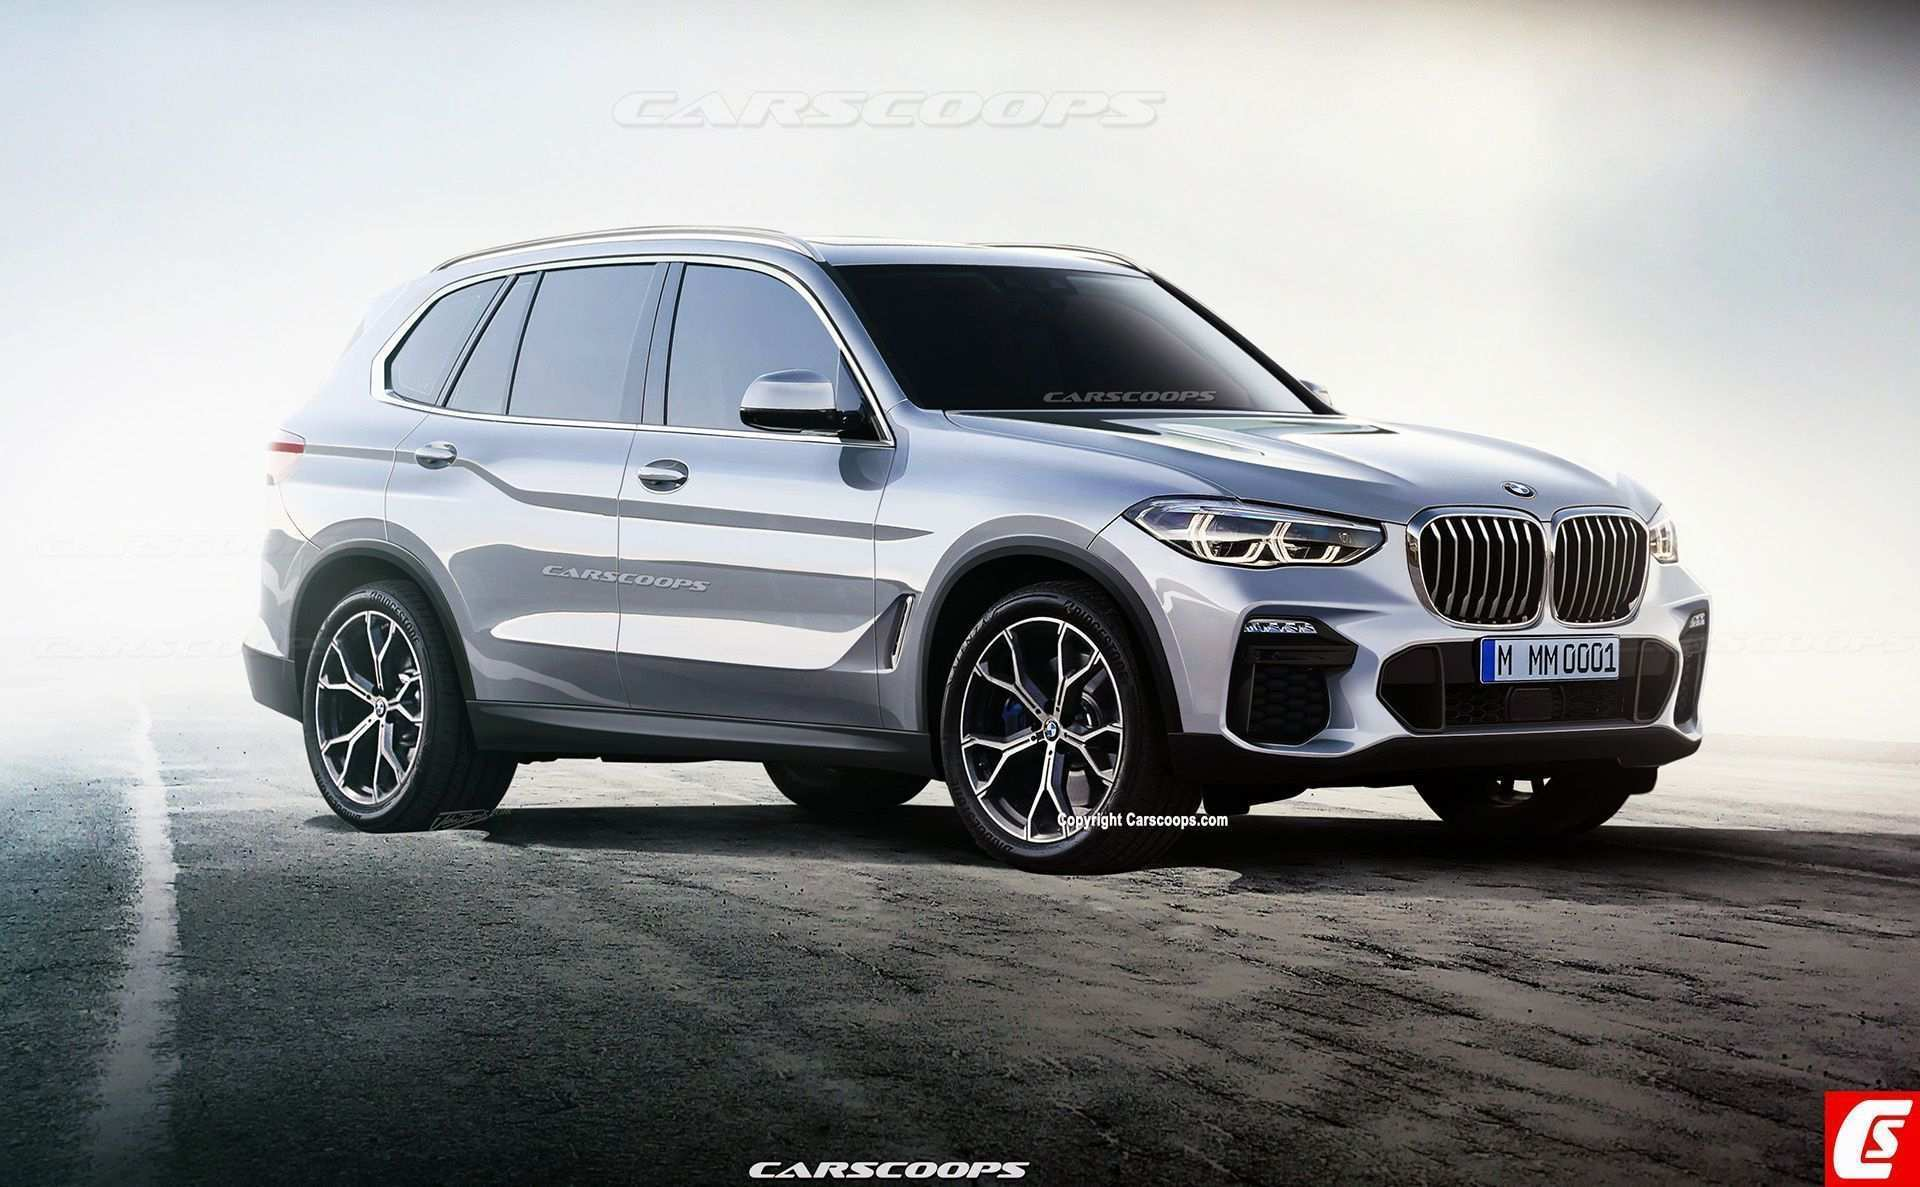 63 Gallery of 2019 Bmw Truck Pictures Exterior with 2019 Bmw Truck Pictures